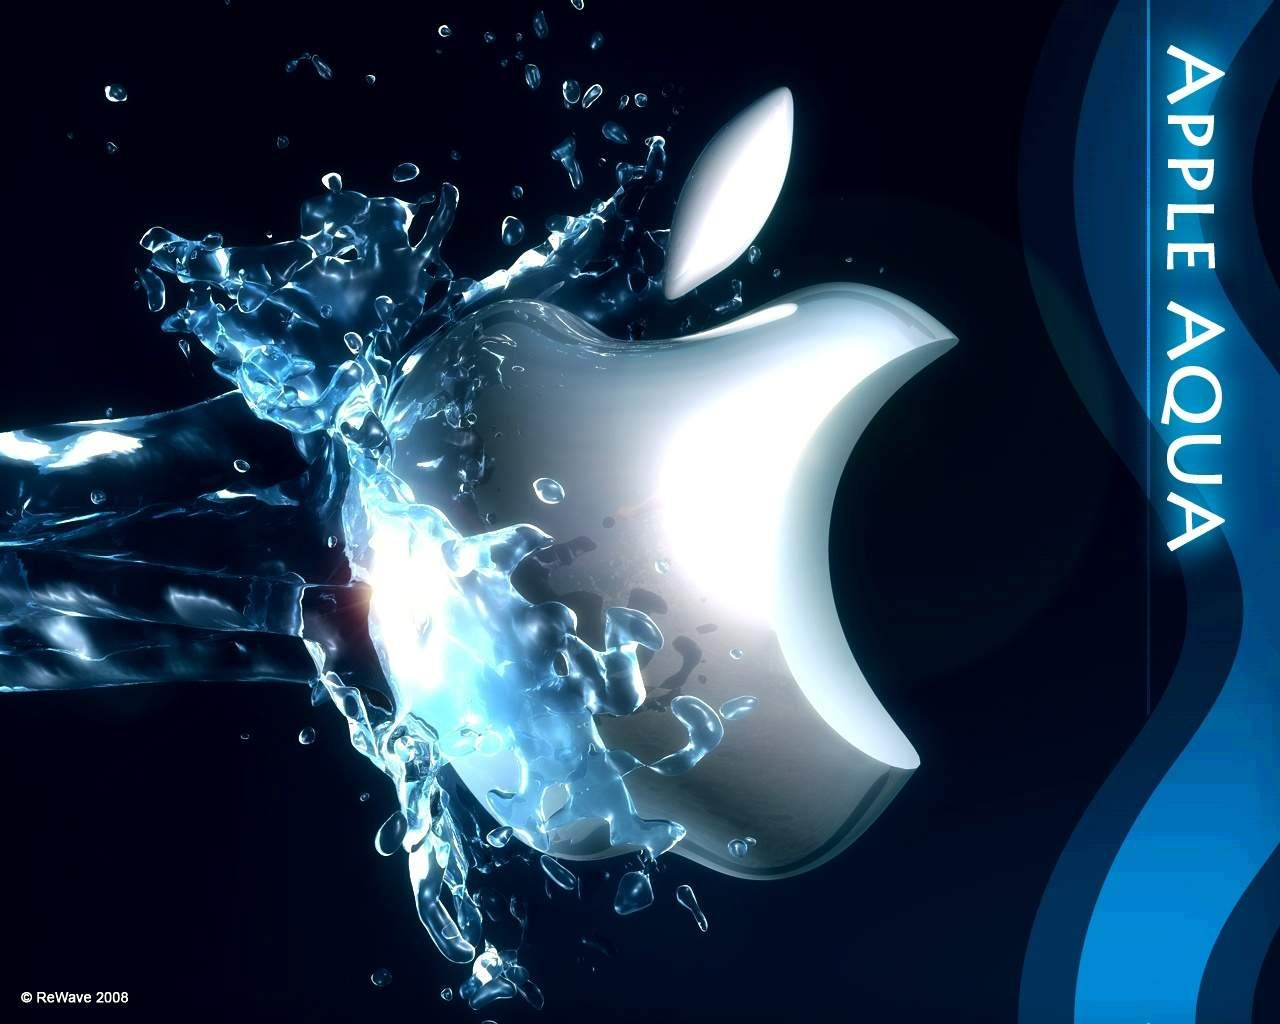 3d Moving Wallpaper Free Download Wallpaper Apple Logo Wallpaper Iphone Apple Wallpaper Moving Wallpapers